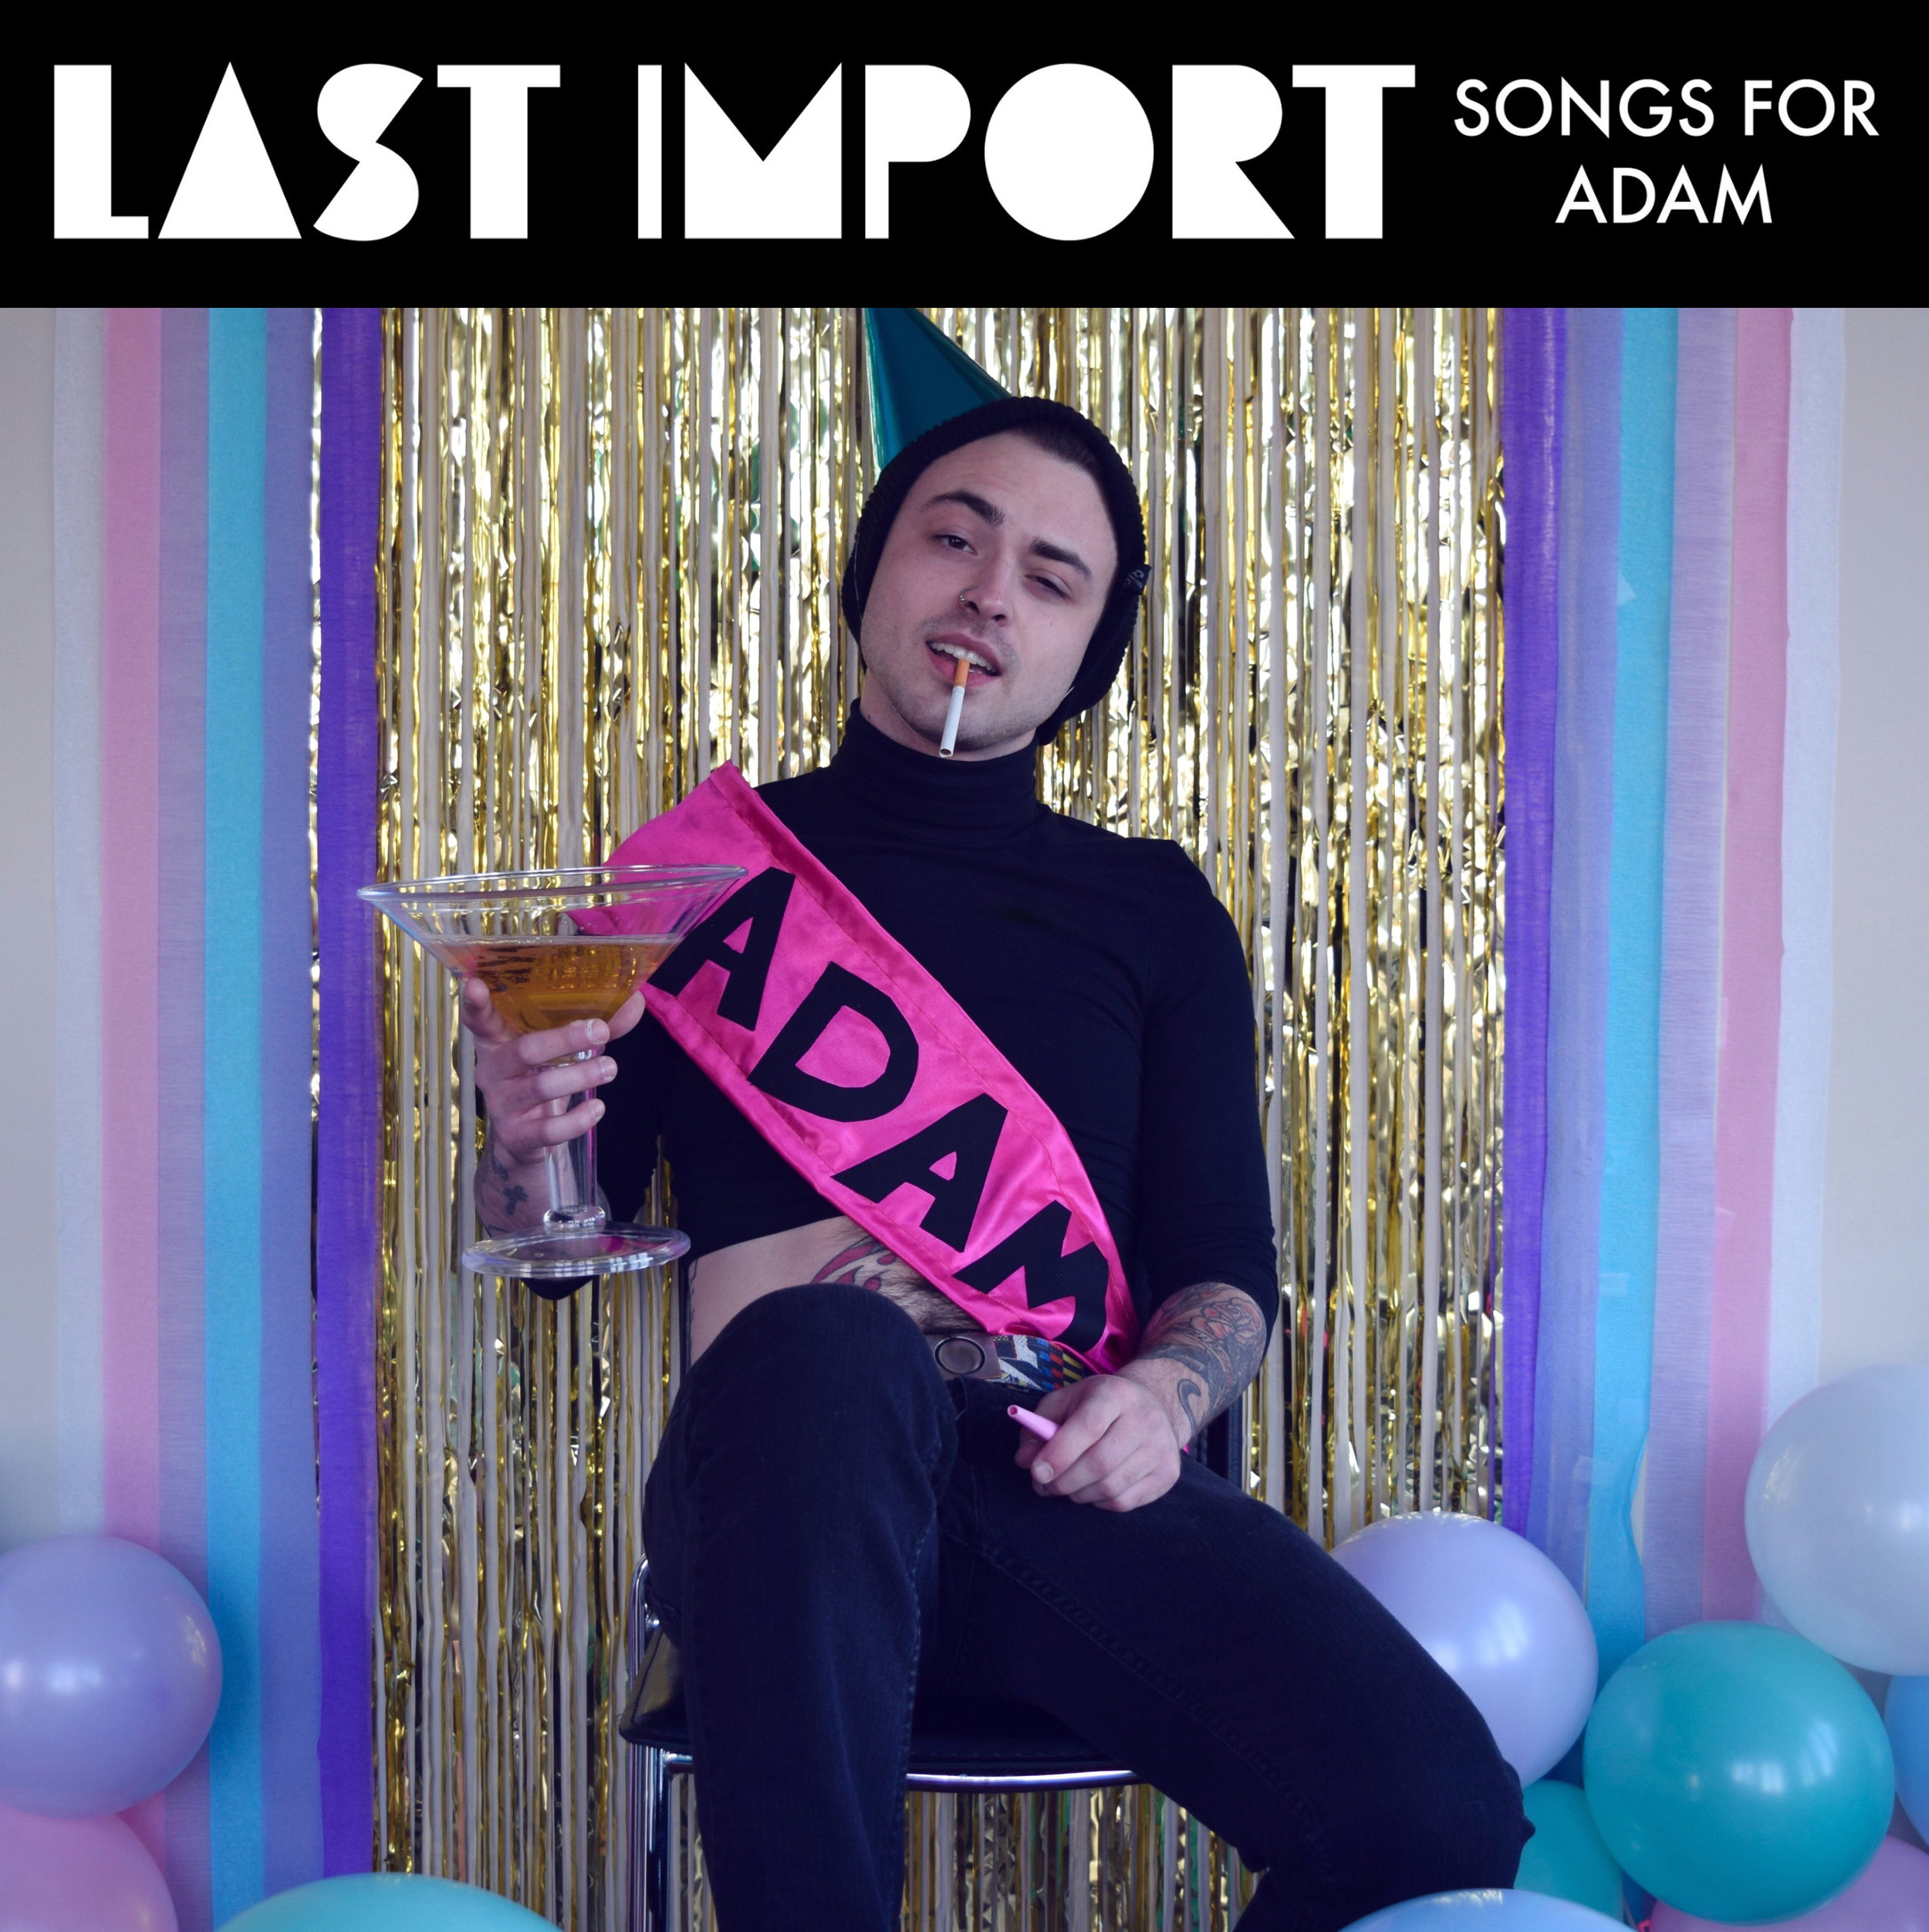 songs for adam - Last Import